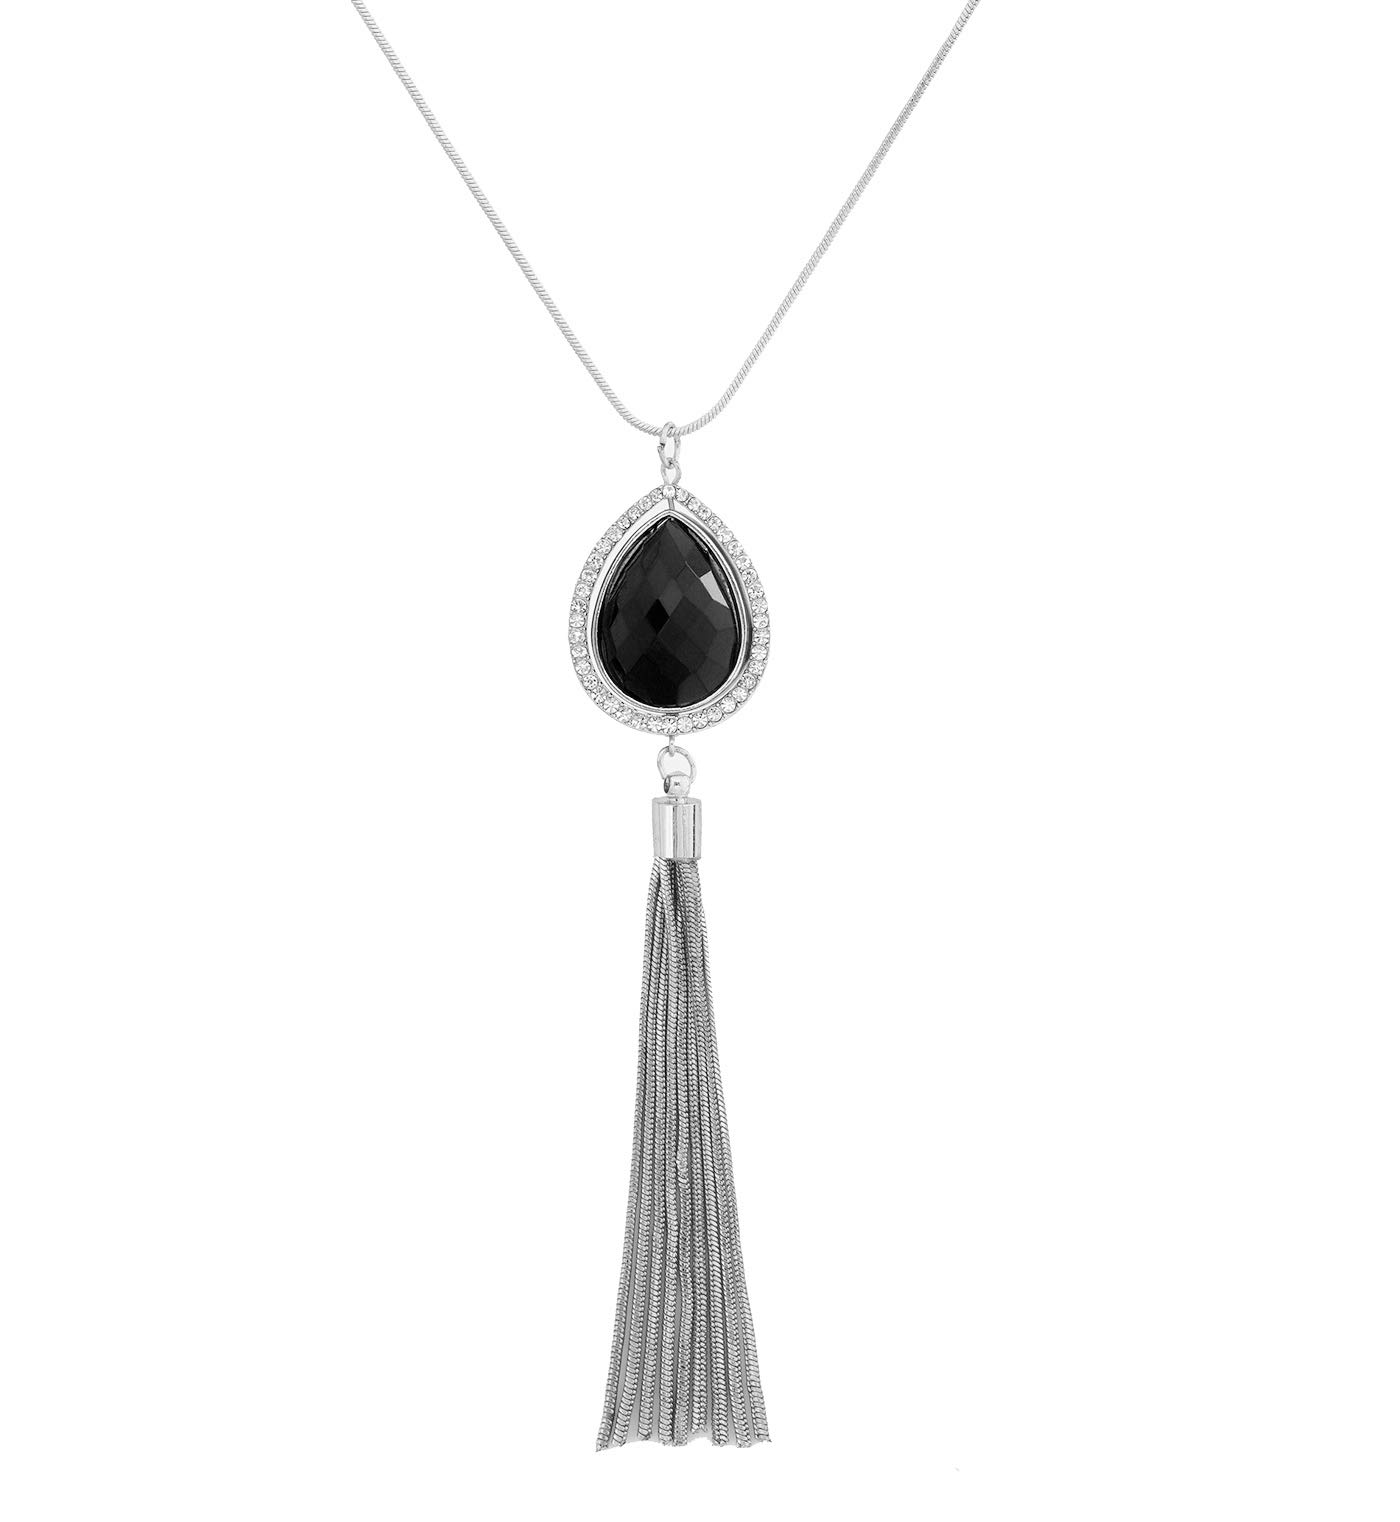 YEYA Long Necklaces for Women Girls Bohemia Tassel Necklace Love Heart Crystal Pendant Necklace Statement Jewelry Necklaces (Silver)